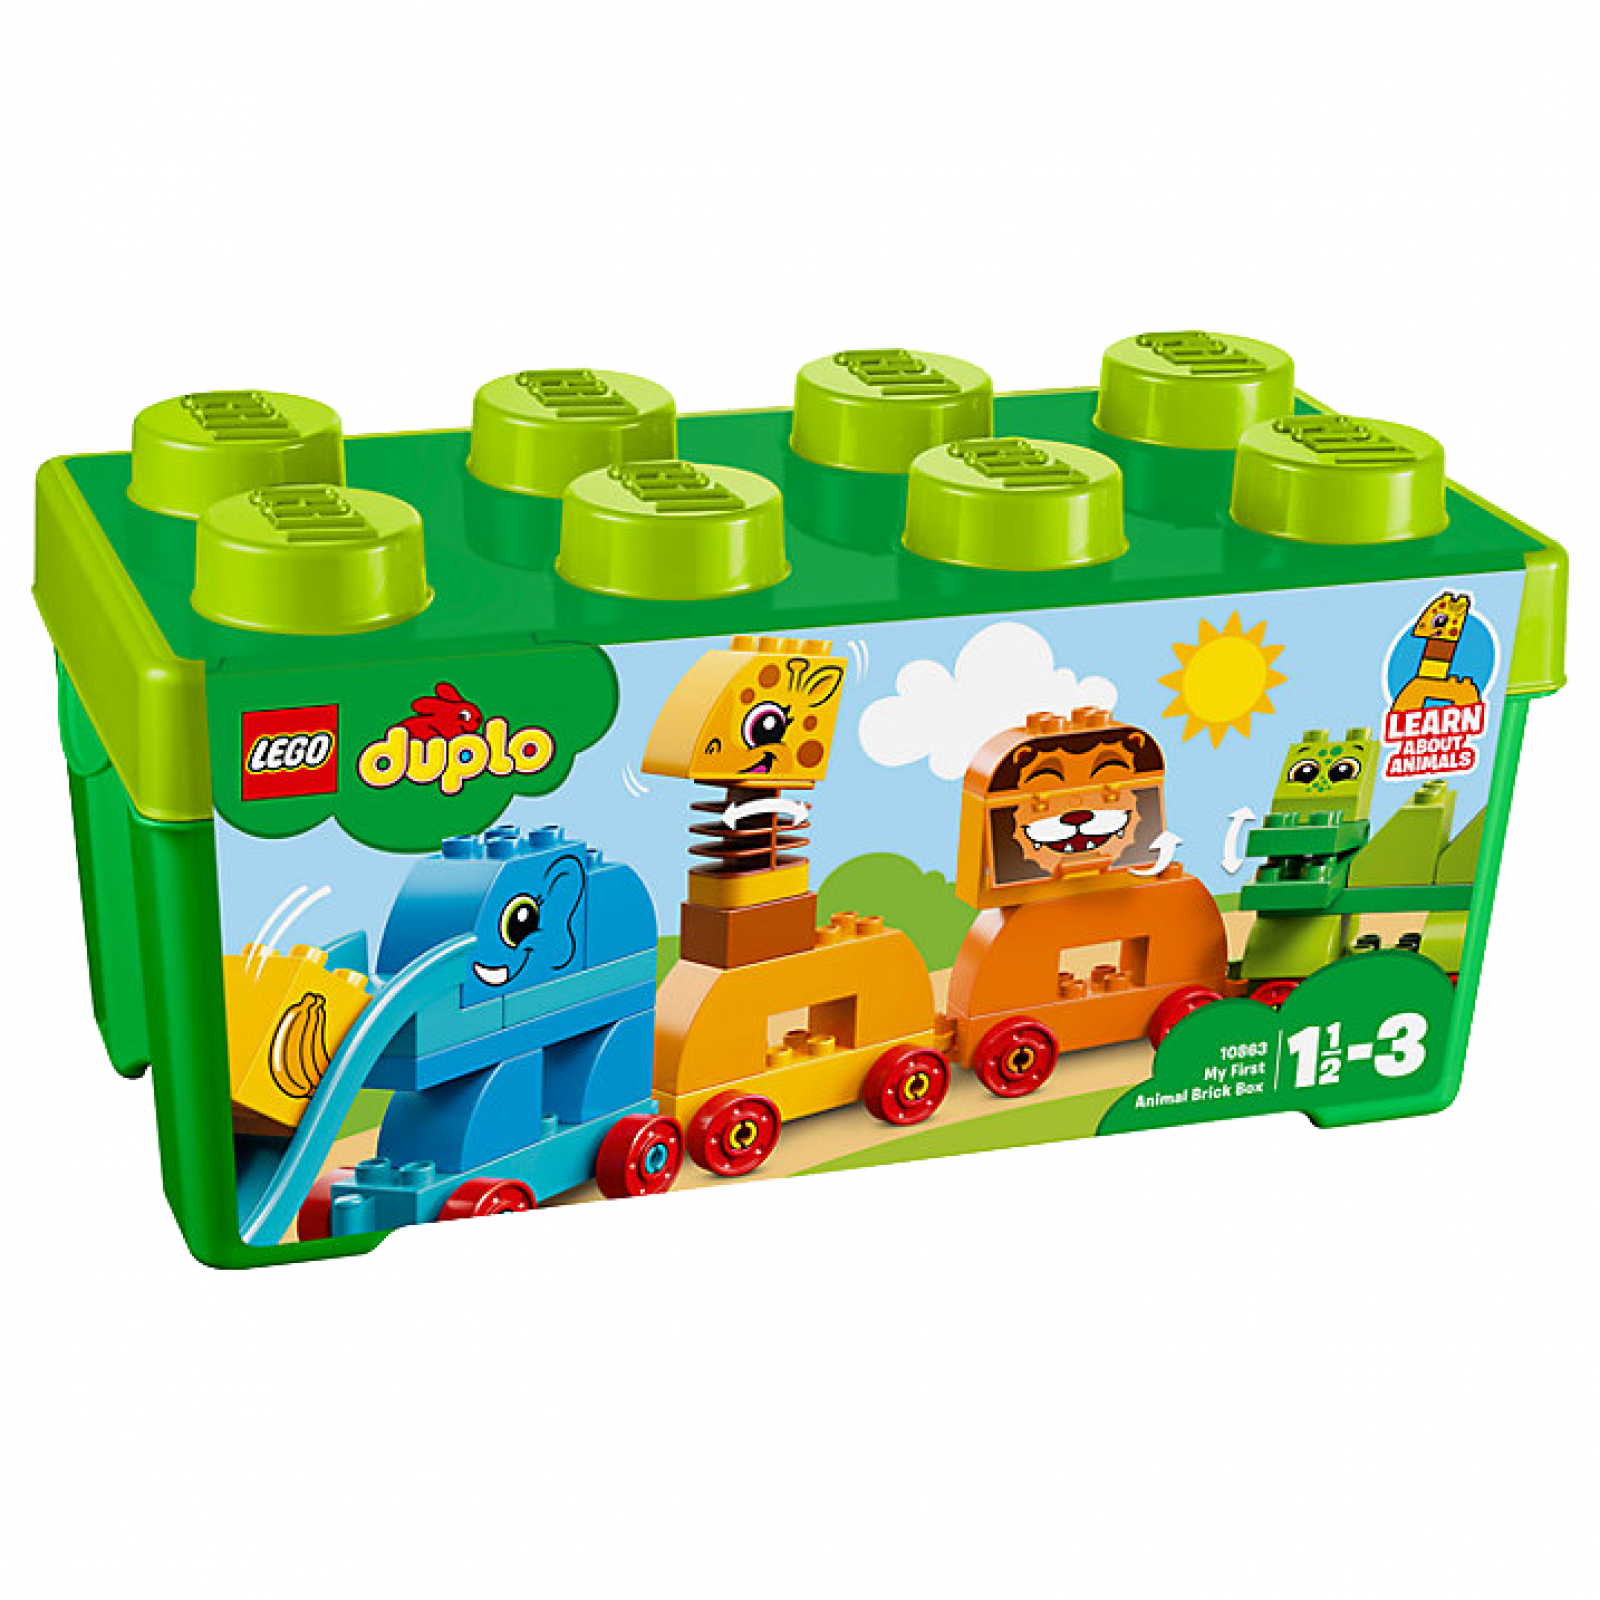 LEGO DUPLO My First Animal Brick Box 10863 thumbnails